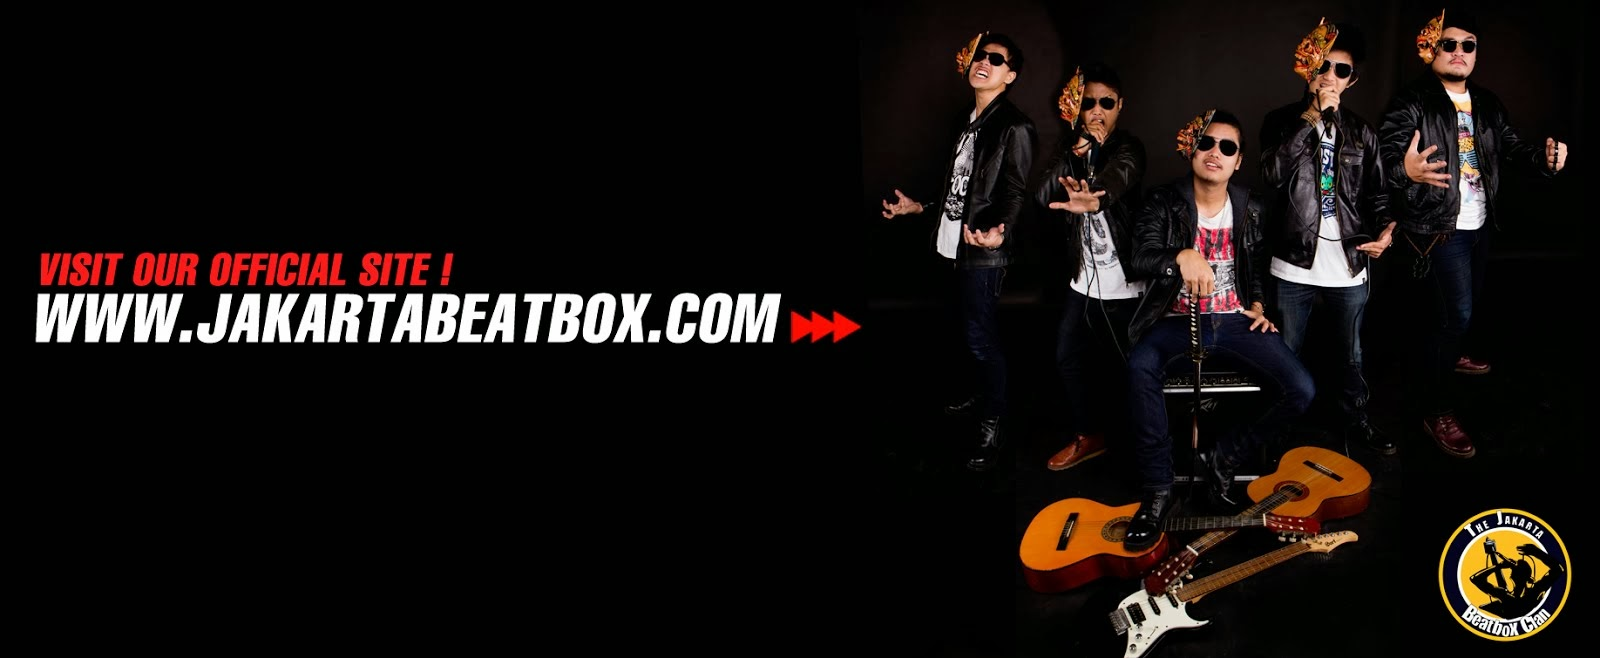 JakartaBeatbox Official Website